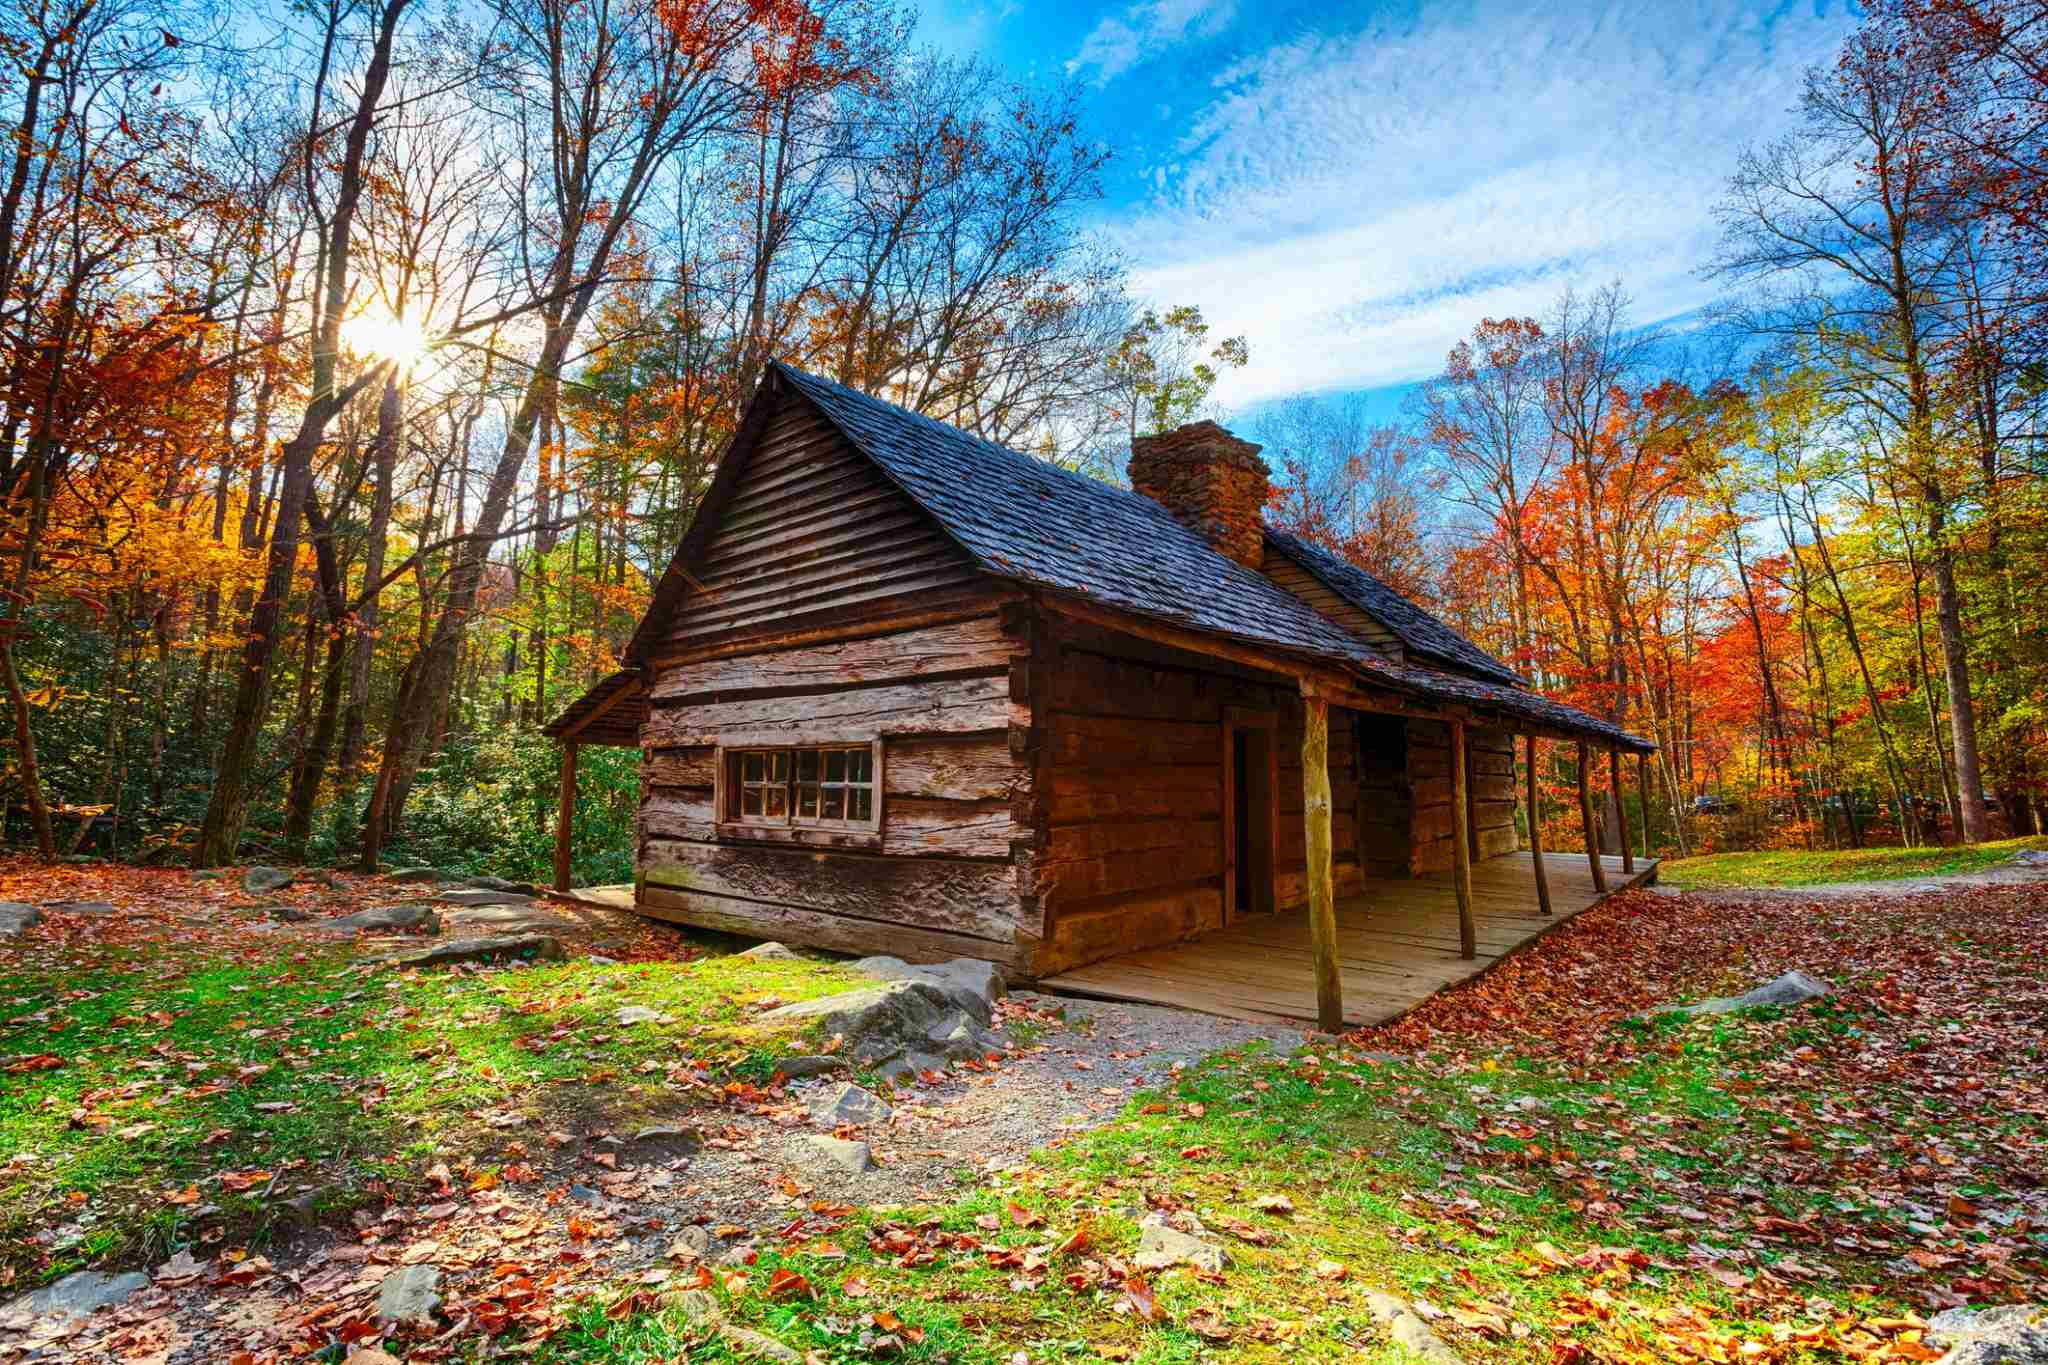 Cabin located in the Great Smoky Mountains National Park in Tennessee, near the village of Gatlinburg.More images from the Great Smoky Mountains NP: Photo by MoreISO/Getty Images